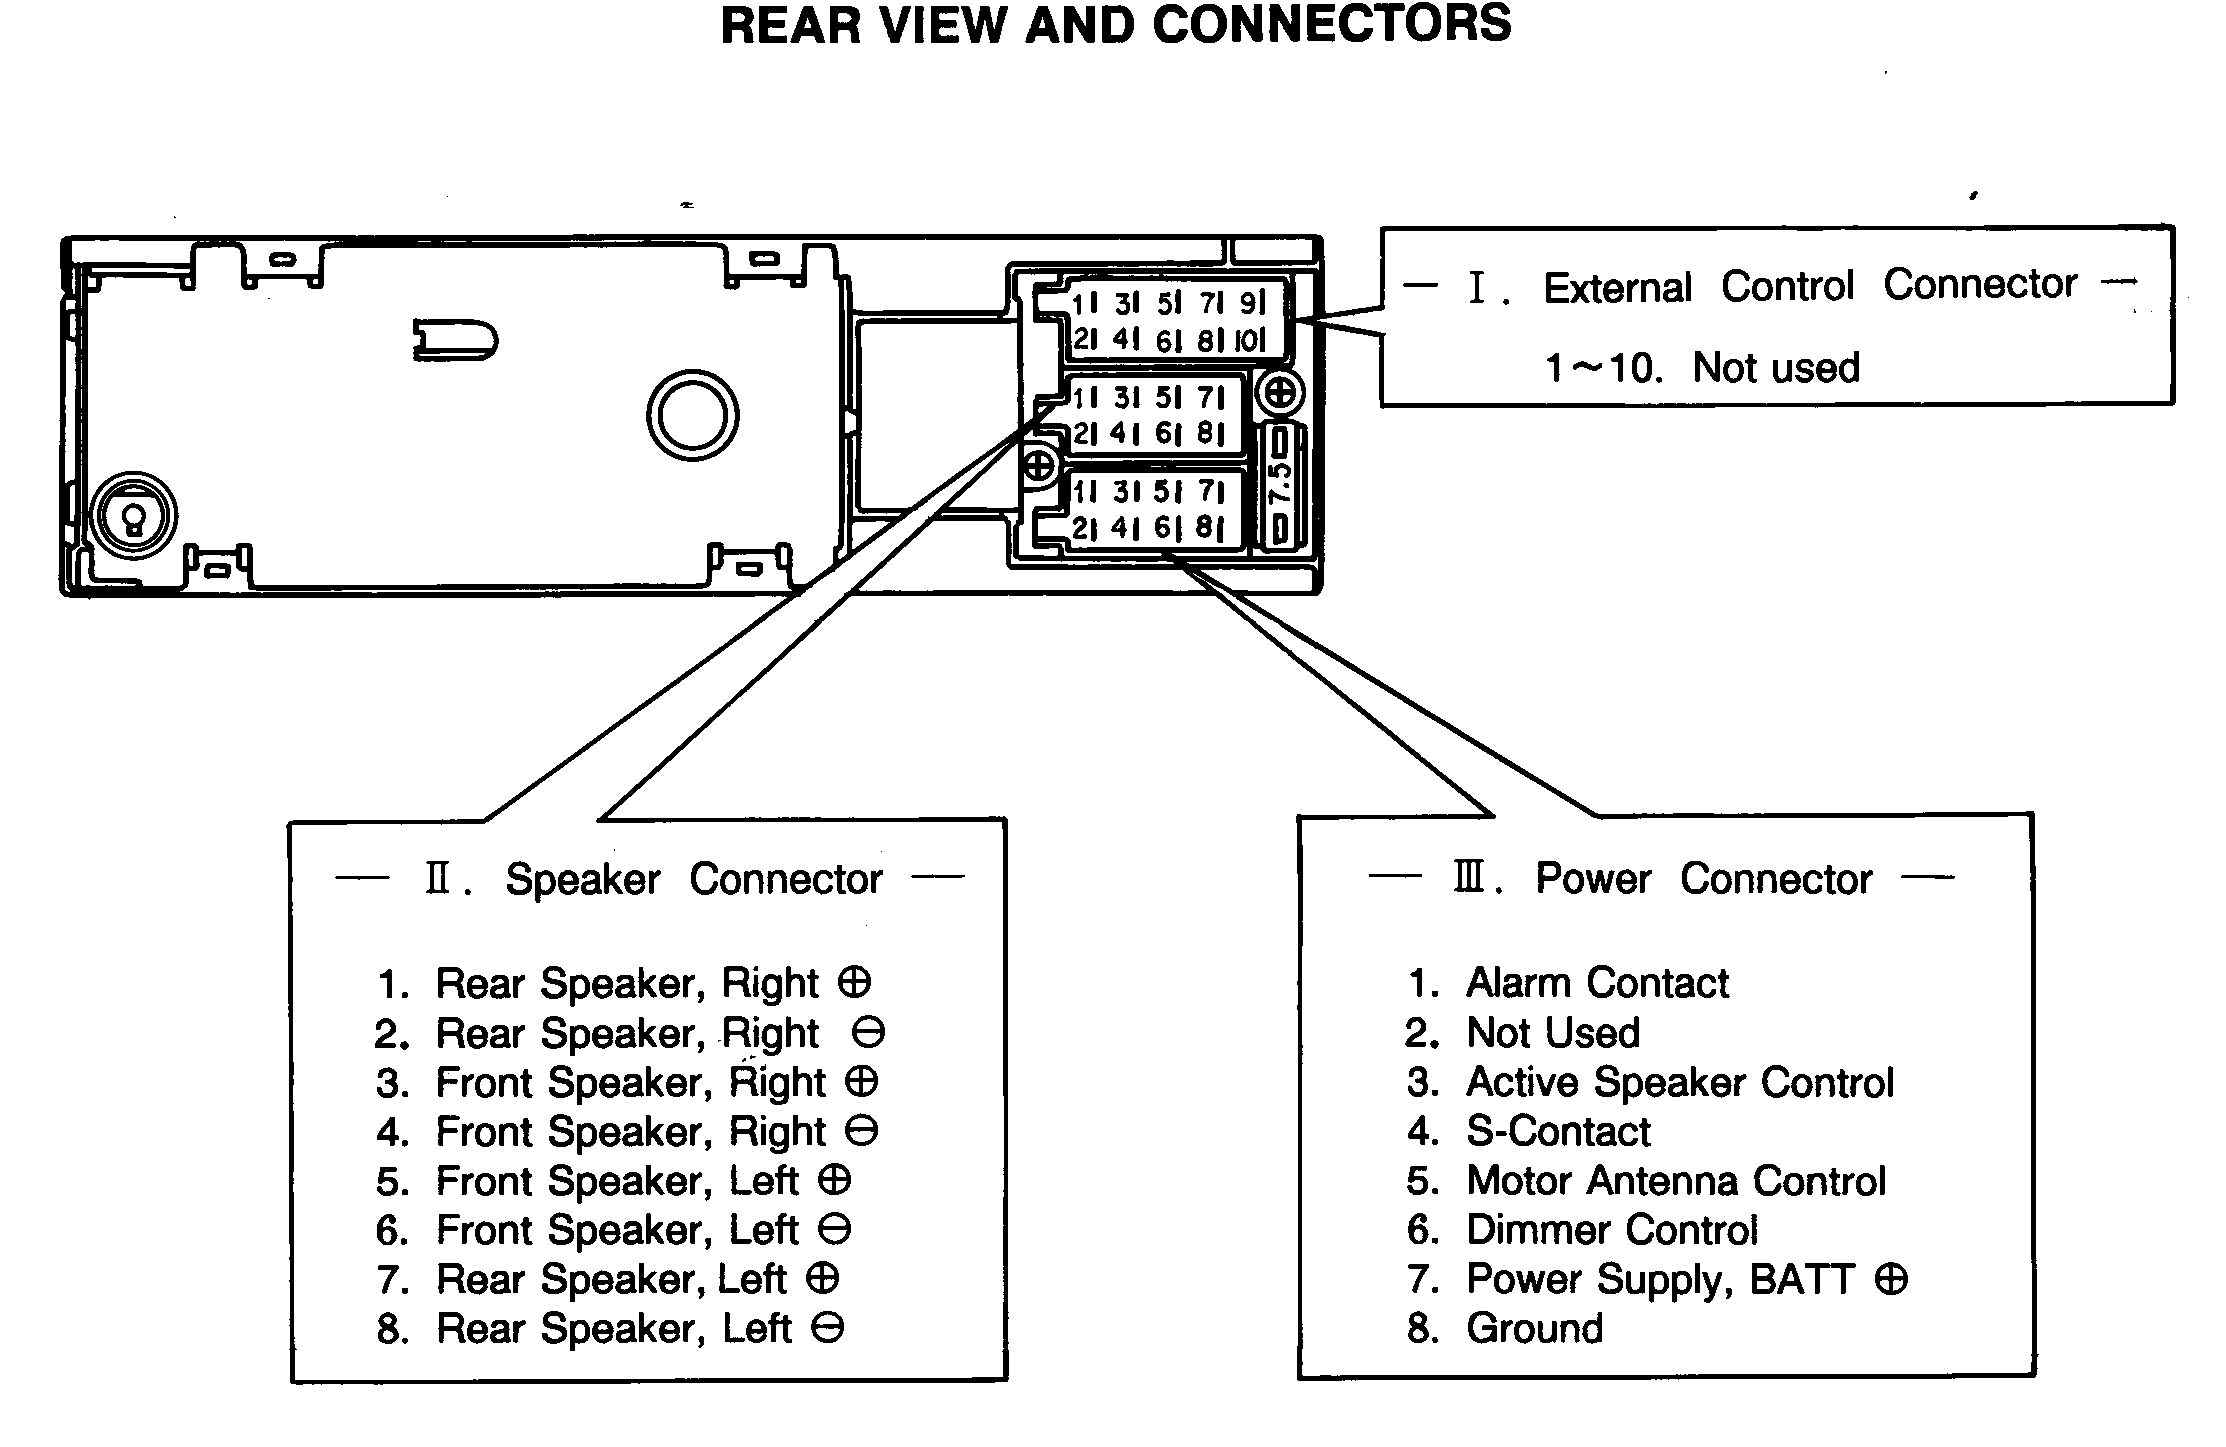 vw jetta radio wiring diagram 5tfd0 ohashiatsu uk \u2022 2010 VW Jetta Wiring Diagram 2012 jetta stereo wiring 3 www cryptopotato co u2022 rh 3 www cryptopotato co 2013 vw jetta radio wiring diagram 2003 vw jetta radio wiring diagram